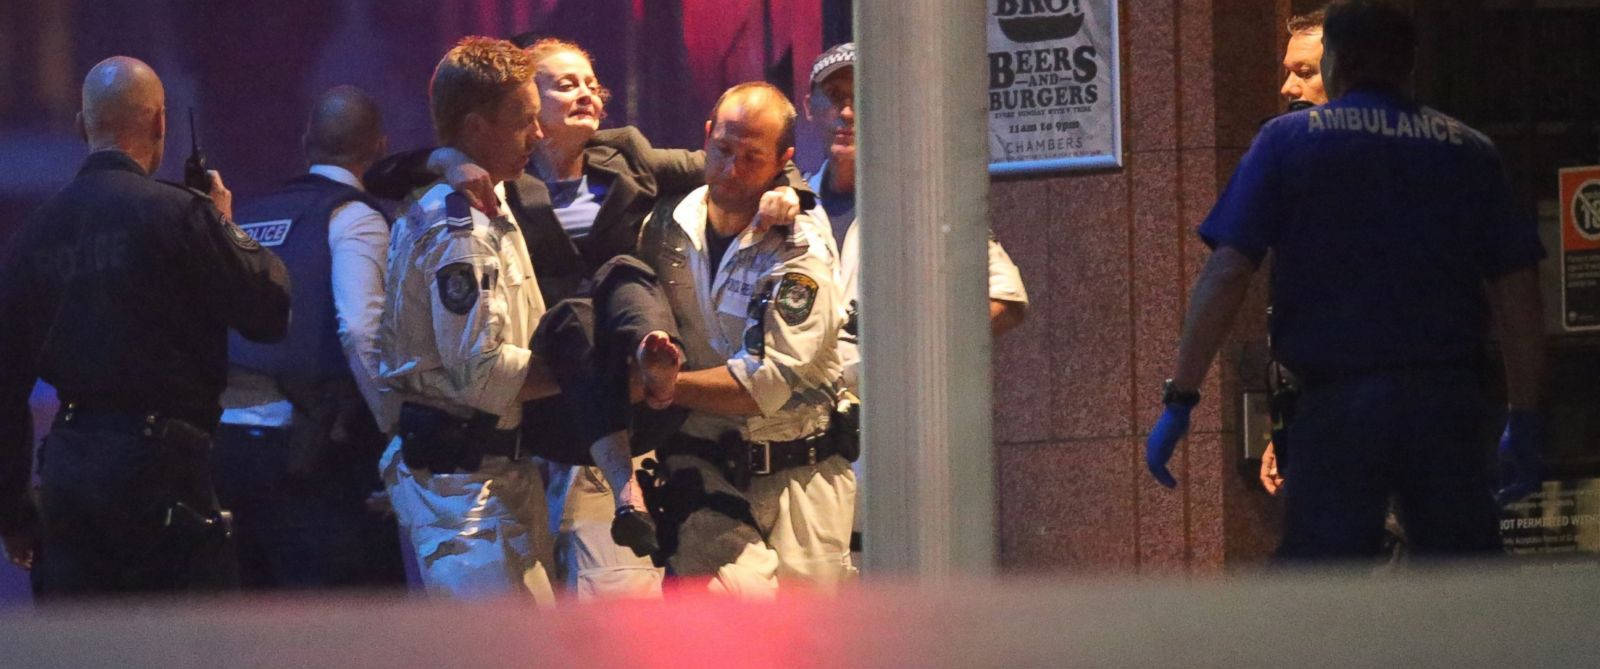 PHOTO: A injured hostage is carried to an ambulance after shots were fired during a cafe siege at Martin Place in the central business district of Sydney, Australia, Dec. 16, 2014.